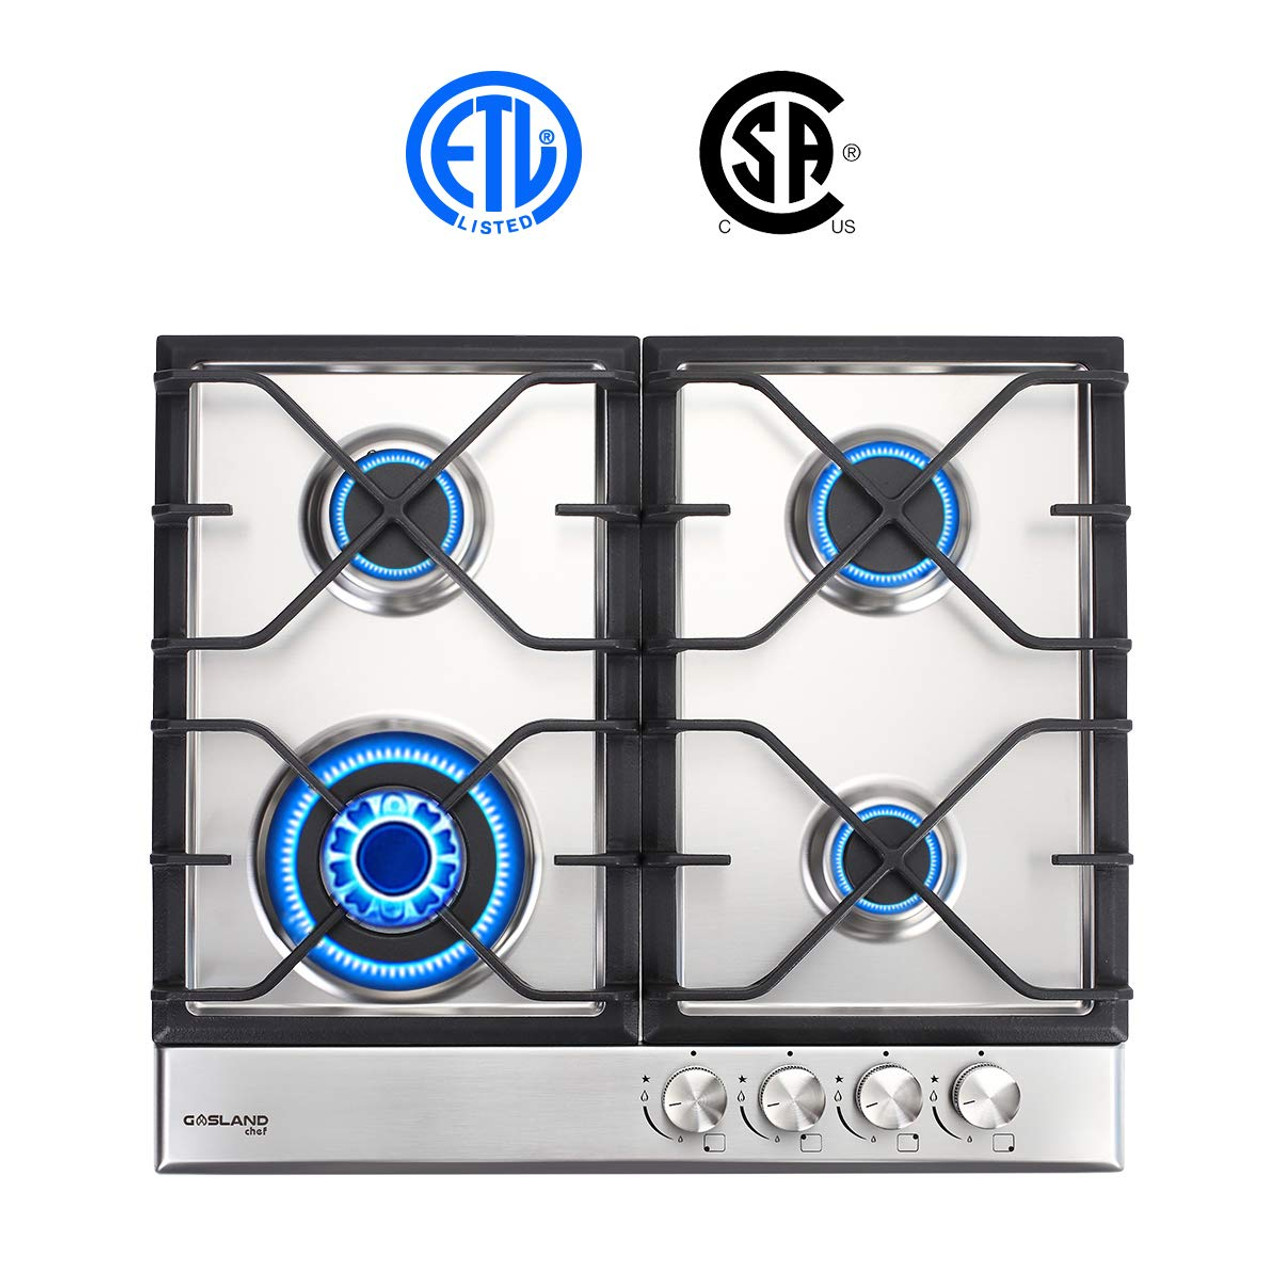 Gas Cooktop Gasland Chef Gh60ssc Built In Gas Stove Top Stainless Steel Lpg Natural Gas Cooktop 24 Gas Stove Top With 4 Sealed Burners Etl Safety Certified Thermocouple Protection Easy To Clean